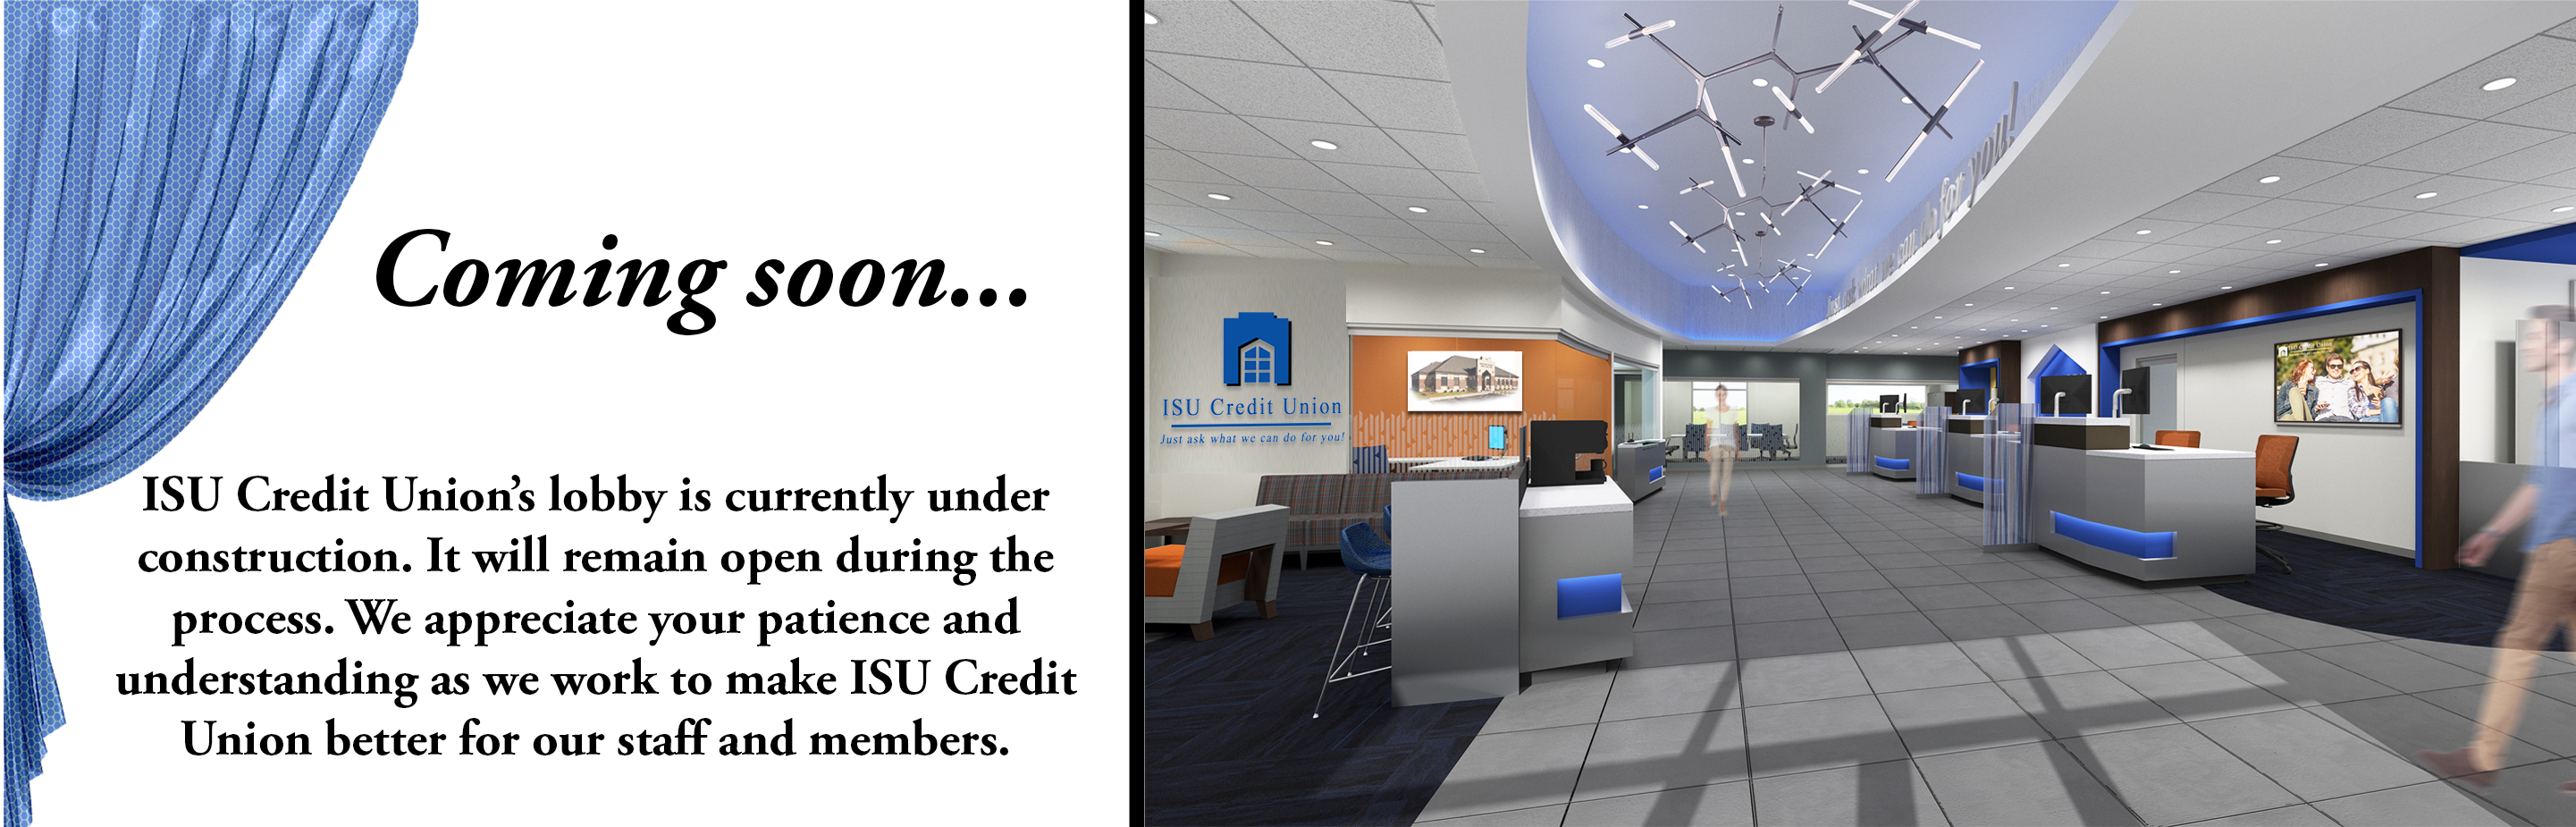 Coming soon.  ISU Credit Union's lobby is currently under construction. It will remain open during the process. We appreciate your patience and understanding.